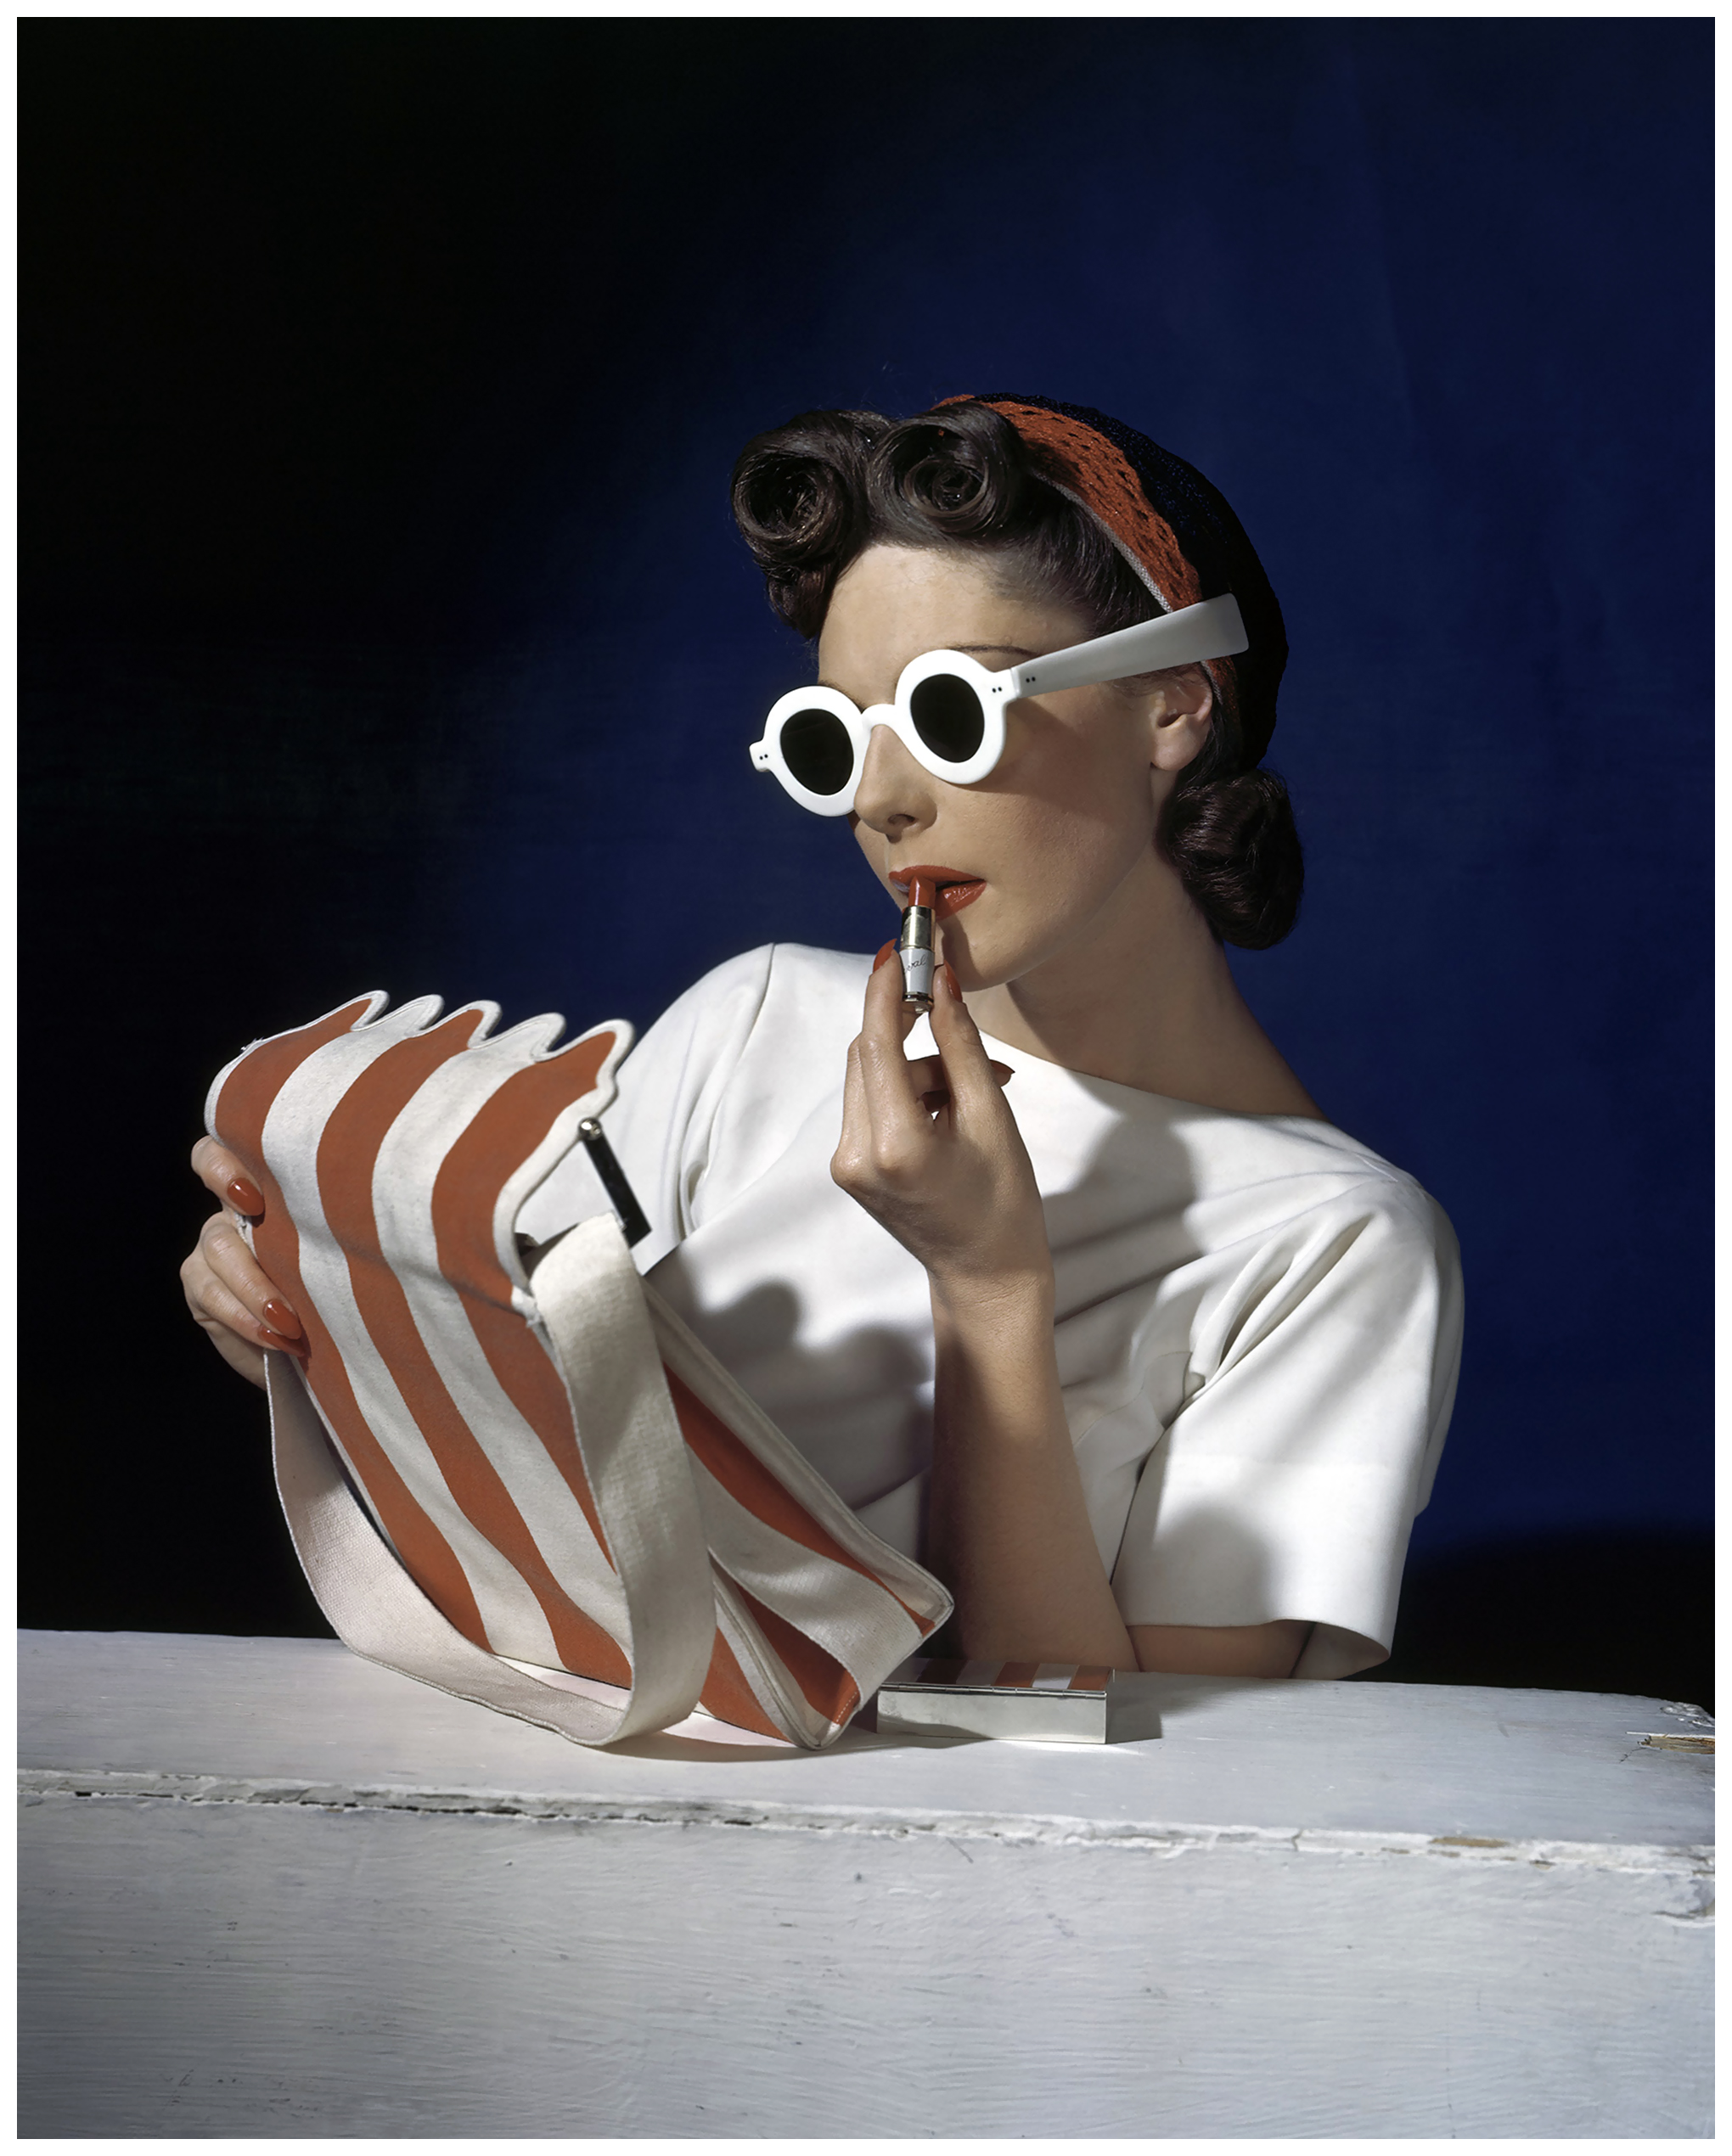 Photo by Horst P. Horst for Vogue, 1940